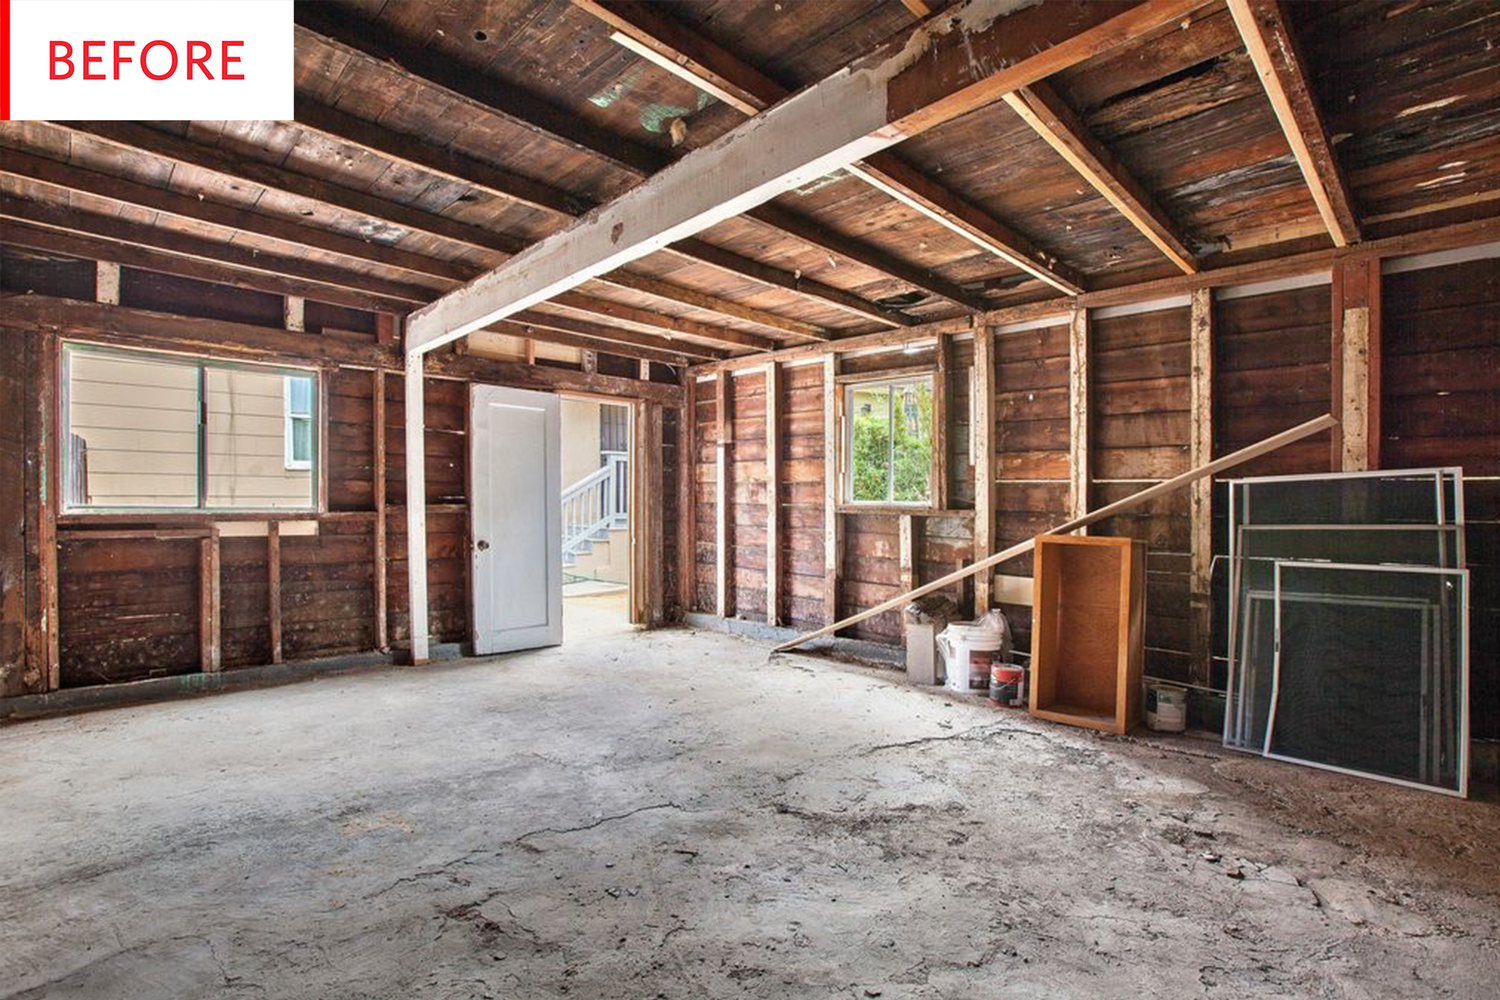 Before & After: A Converted Garage To $20K Studio Apartment ...